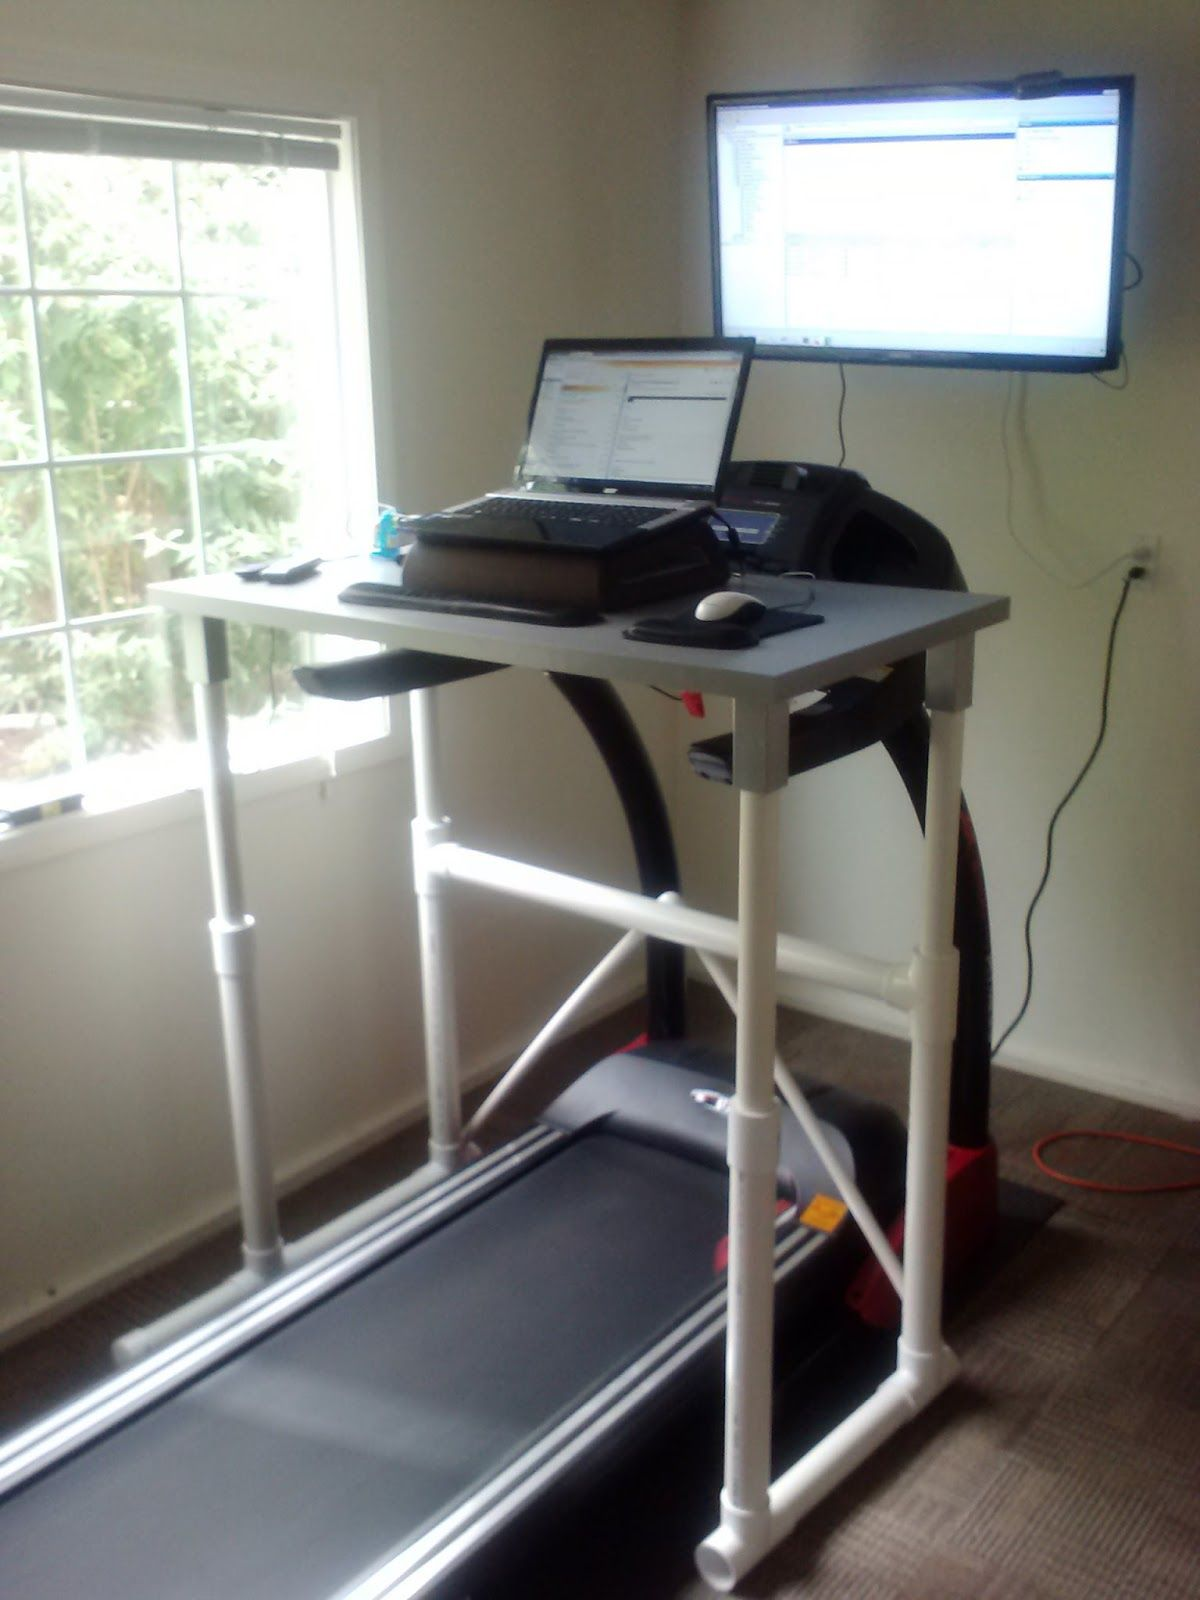 Diy ikea standing desk - This One Seems To Be The Best Idea Diy Pvc Ikea Treadmill Desk